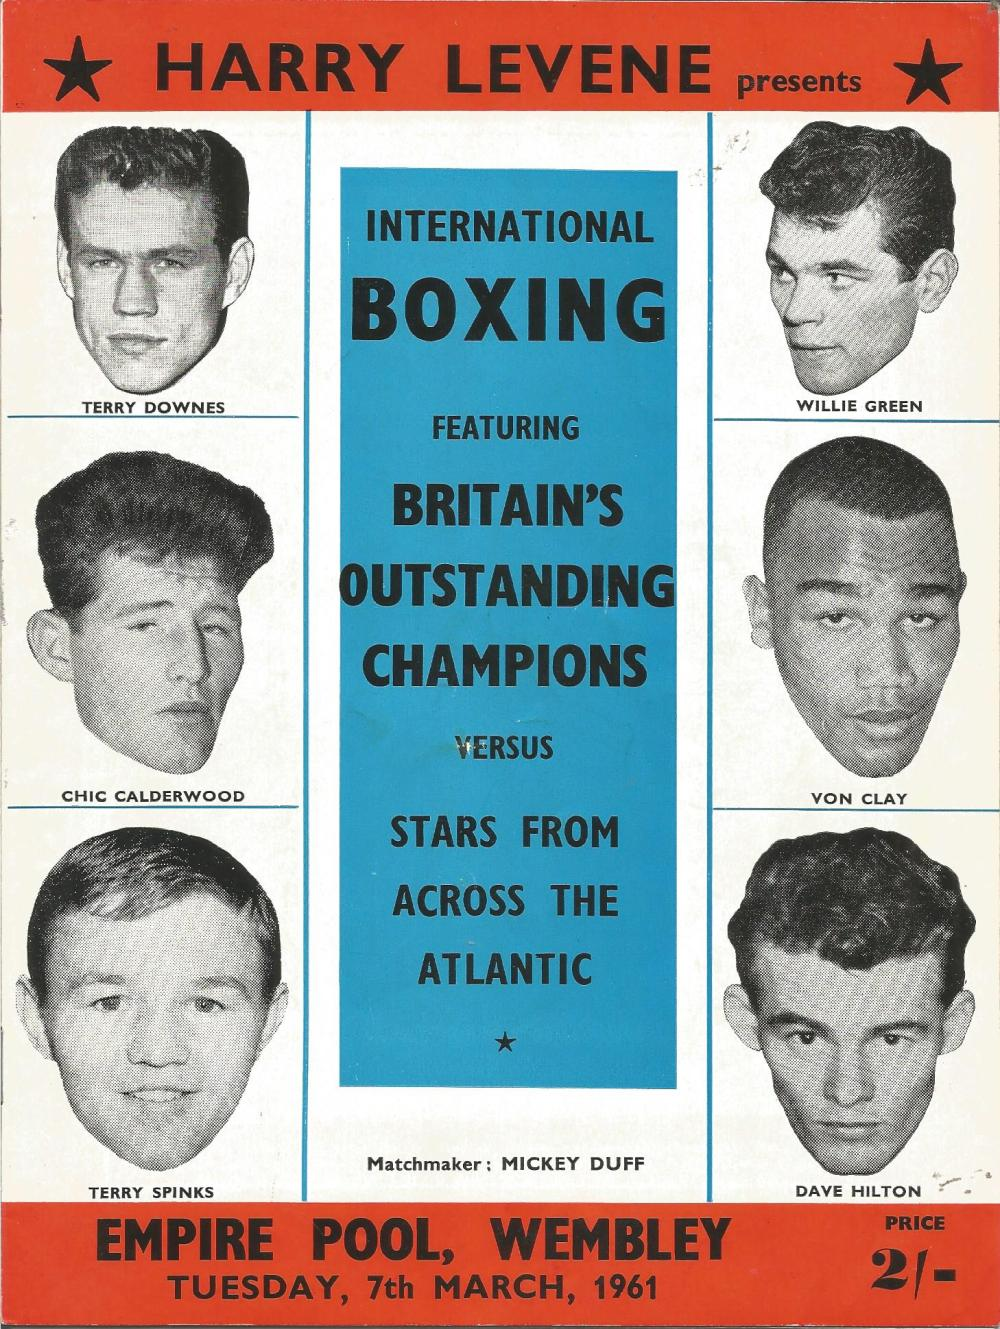 Boxing Britains Outstanding Champions v Stars from across the Atlantic vintage fight programme